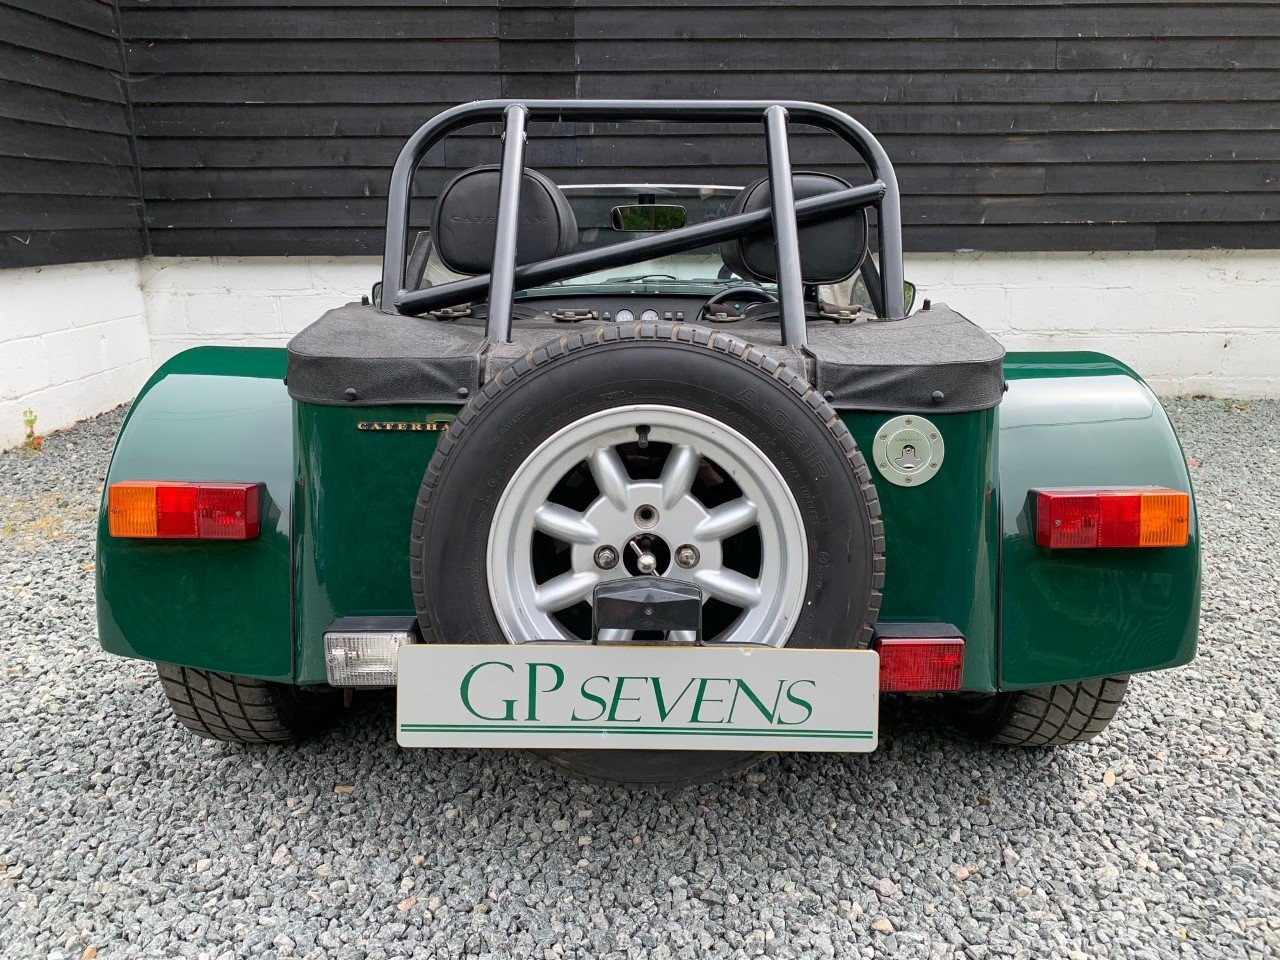 1998 Caterham Classic 1.6 Ford X Flow 100bhp 4 speed For Sale (picture 5 of 6)